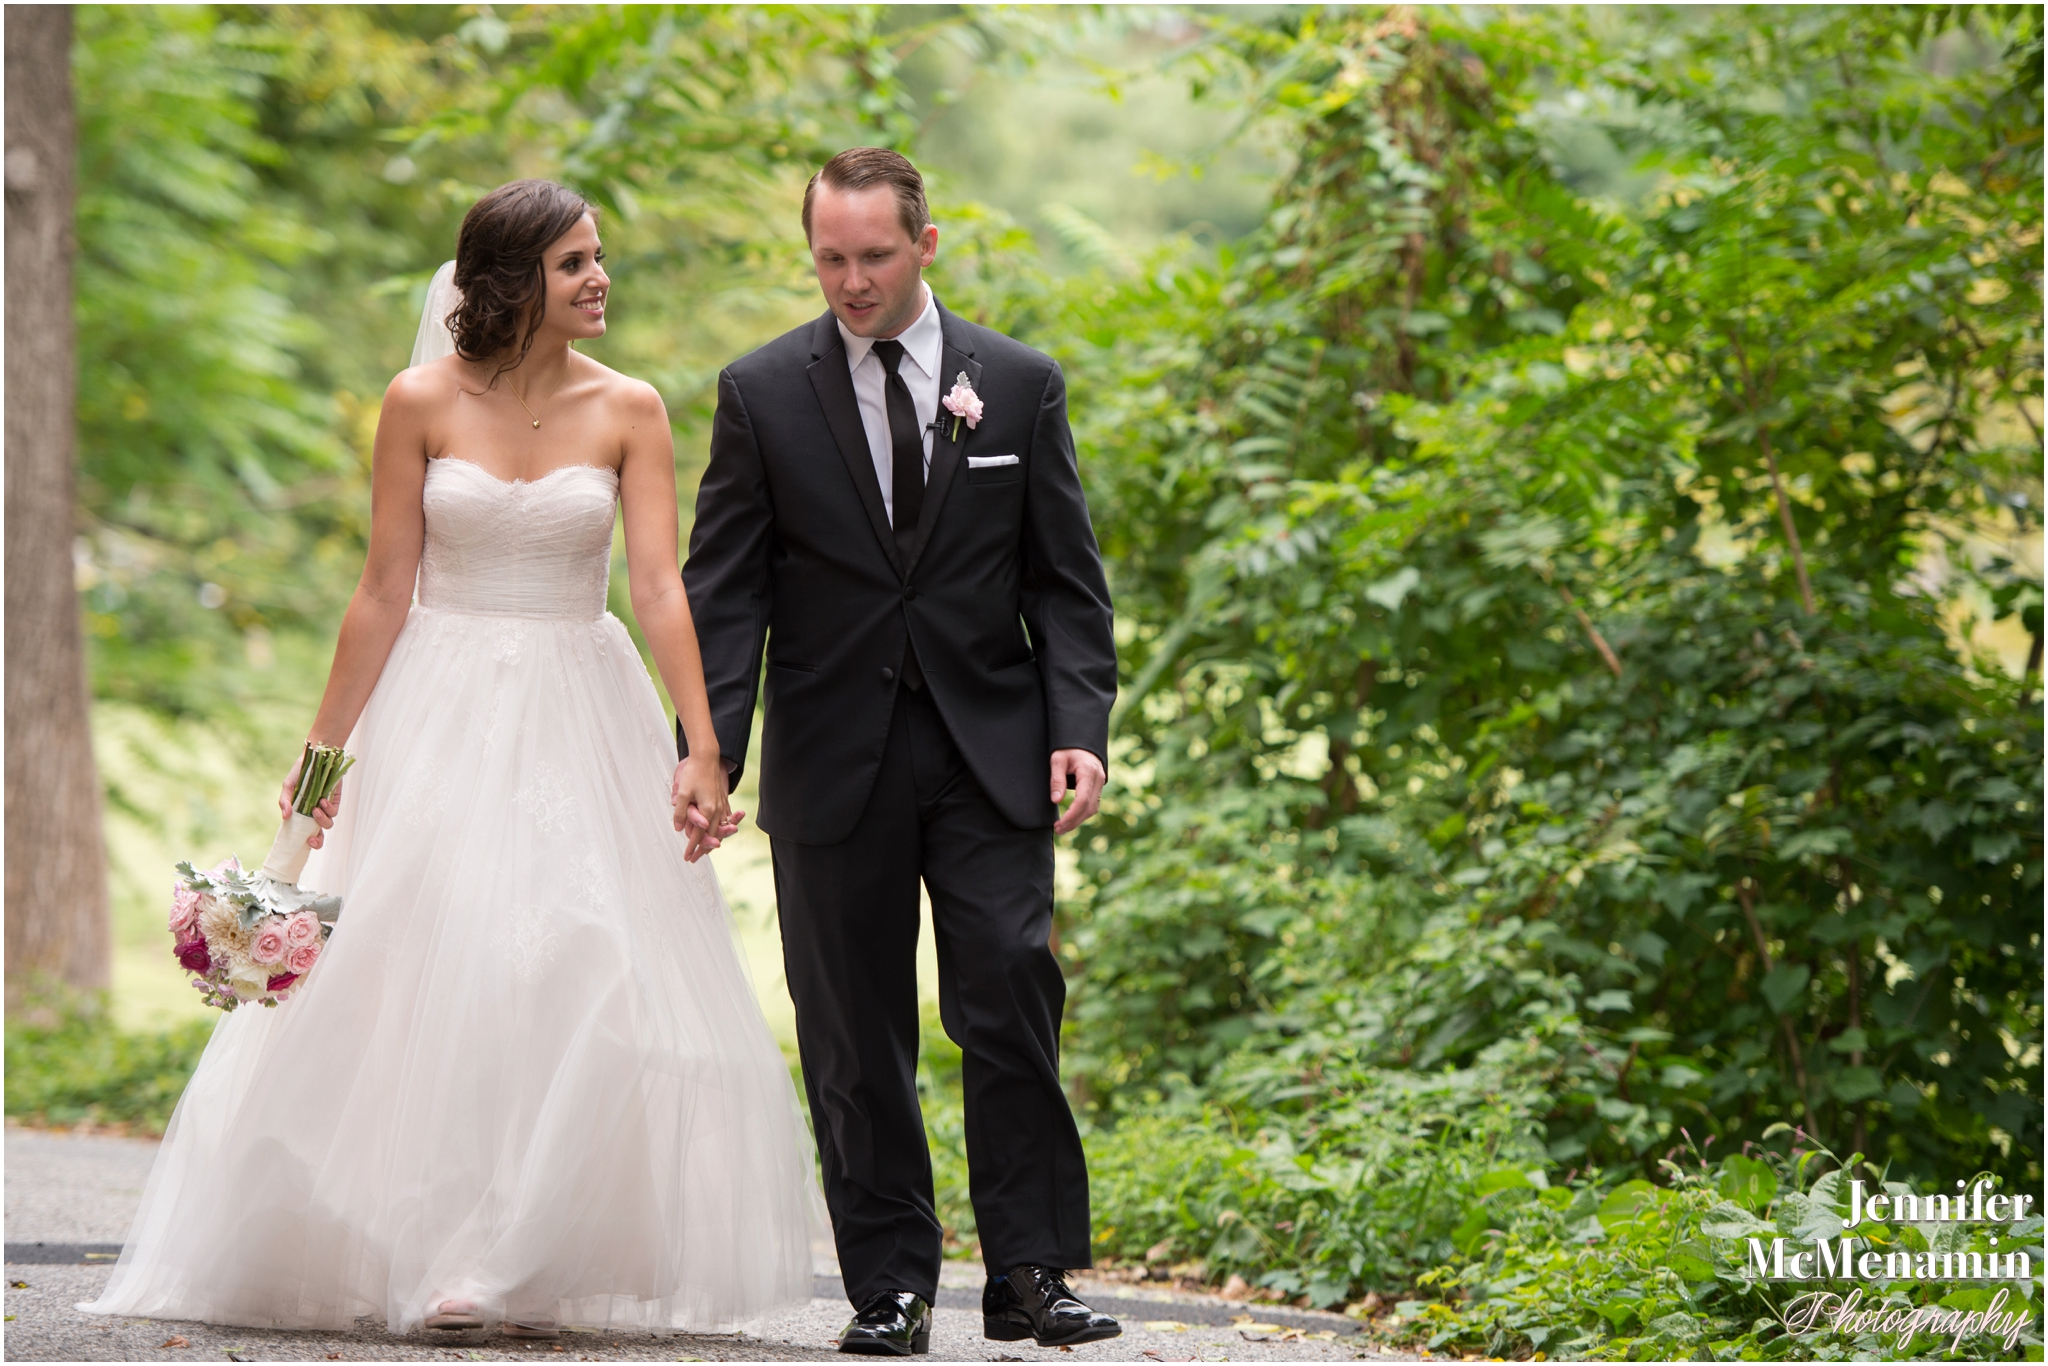 0091-BlumWilliams_03326-0658_JenniferMcMenaminPhotography_Evergreen-Museum-Carriage-House_Baltimore-wedding-photography_Baltimore-wedding-photographer